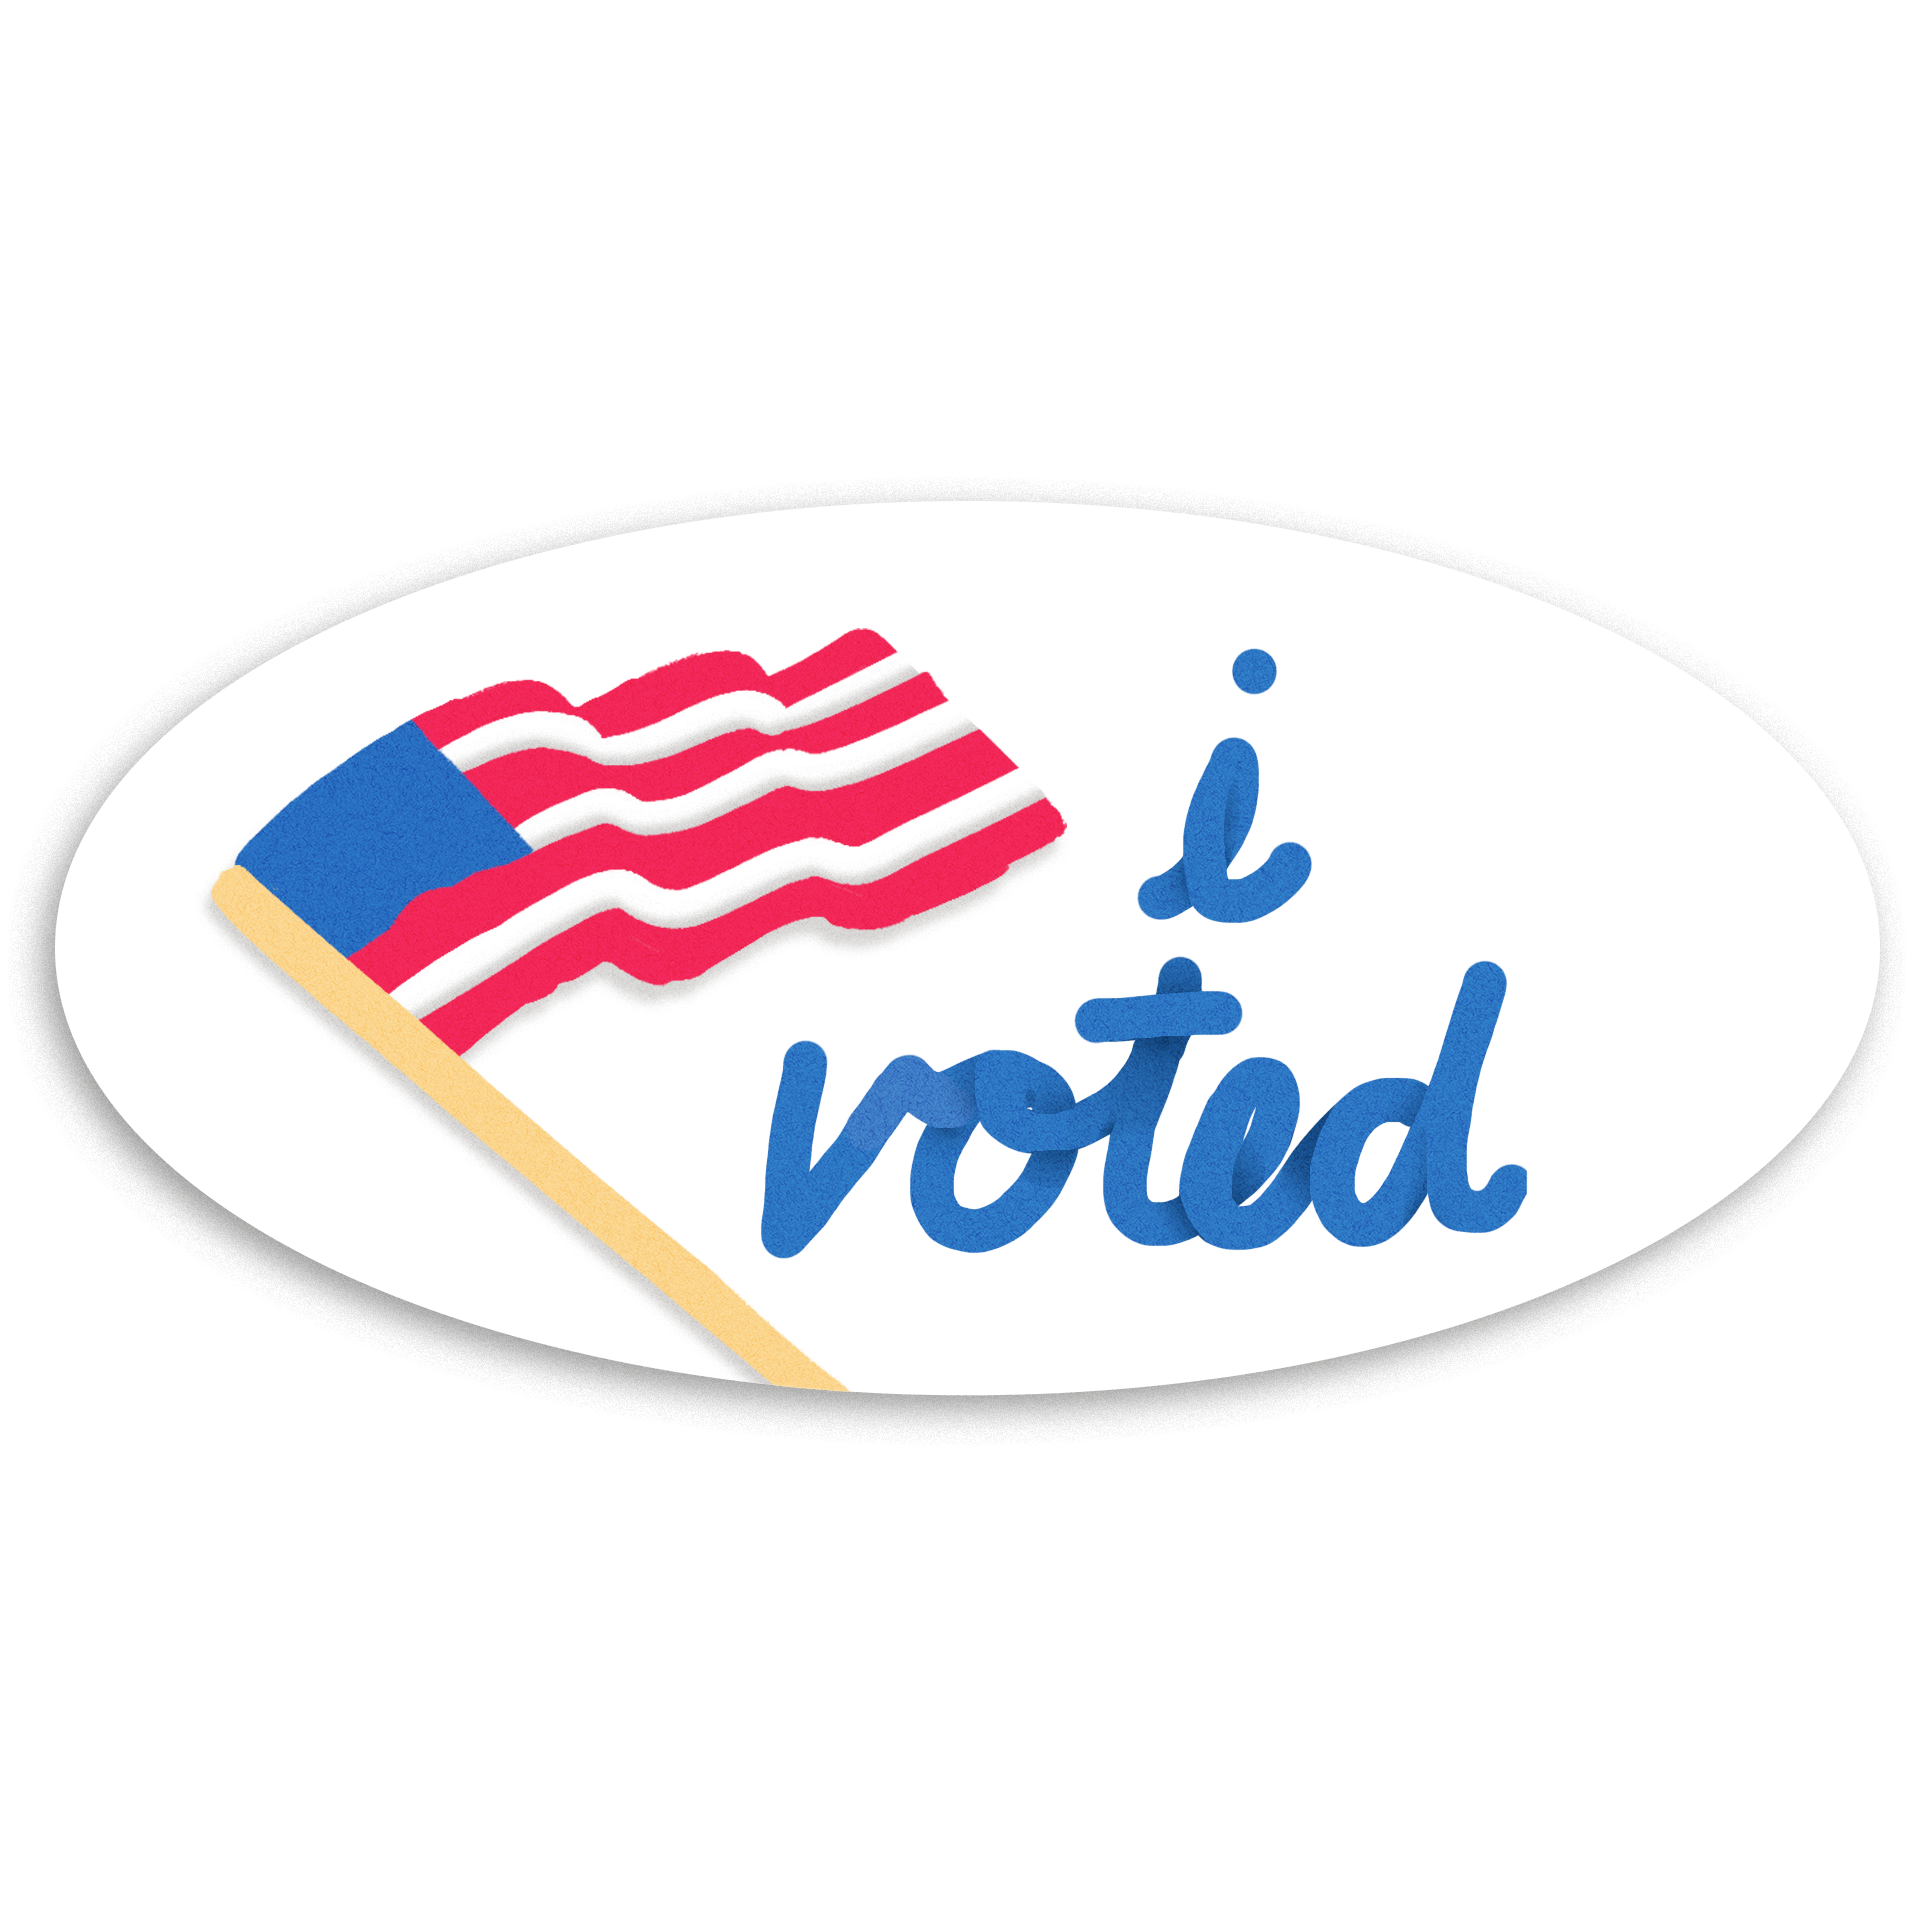 Stickers_10_v002.png